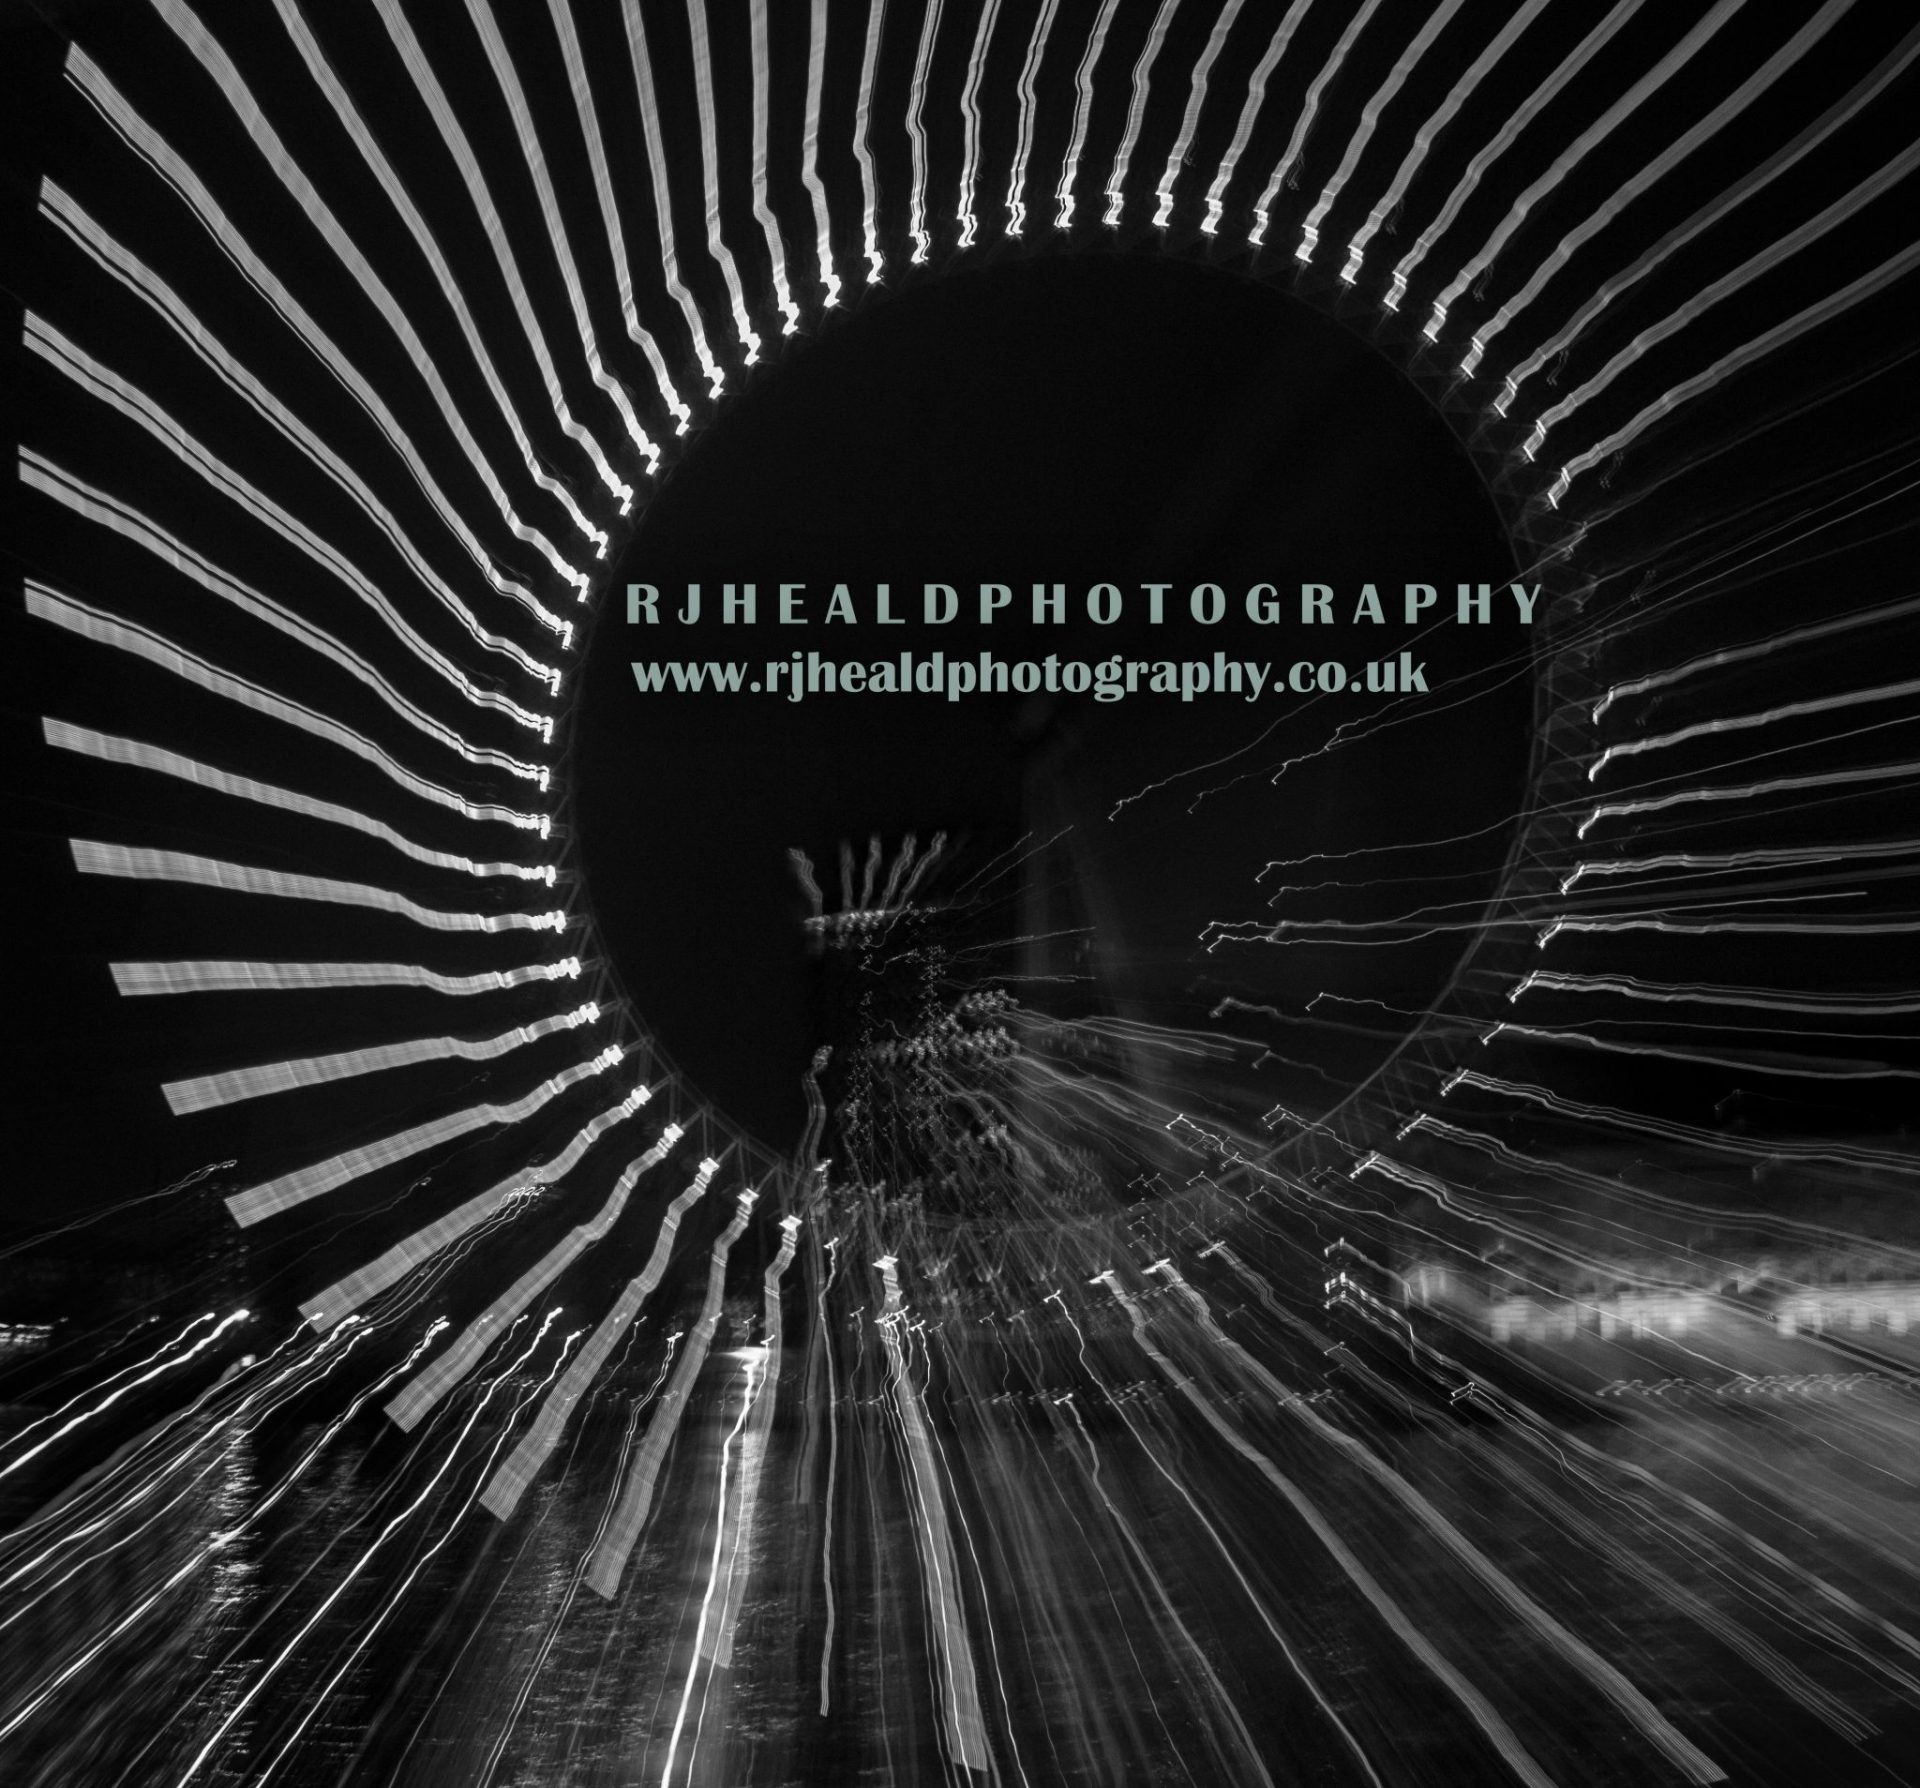 Richard Heald Photography images of Leeds, available from Fabrication Crafts Leeds' Independent Department Store, locally made items for you & your home